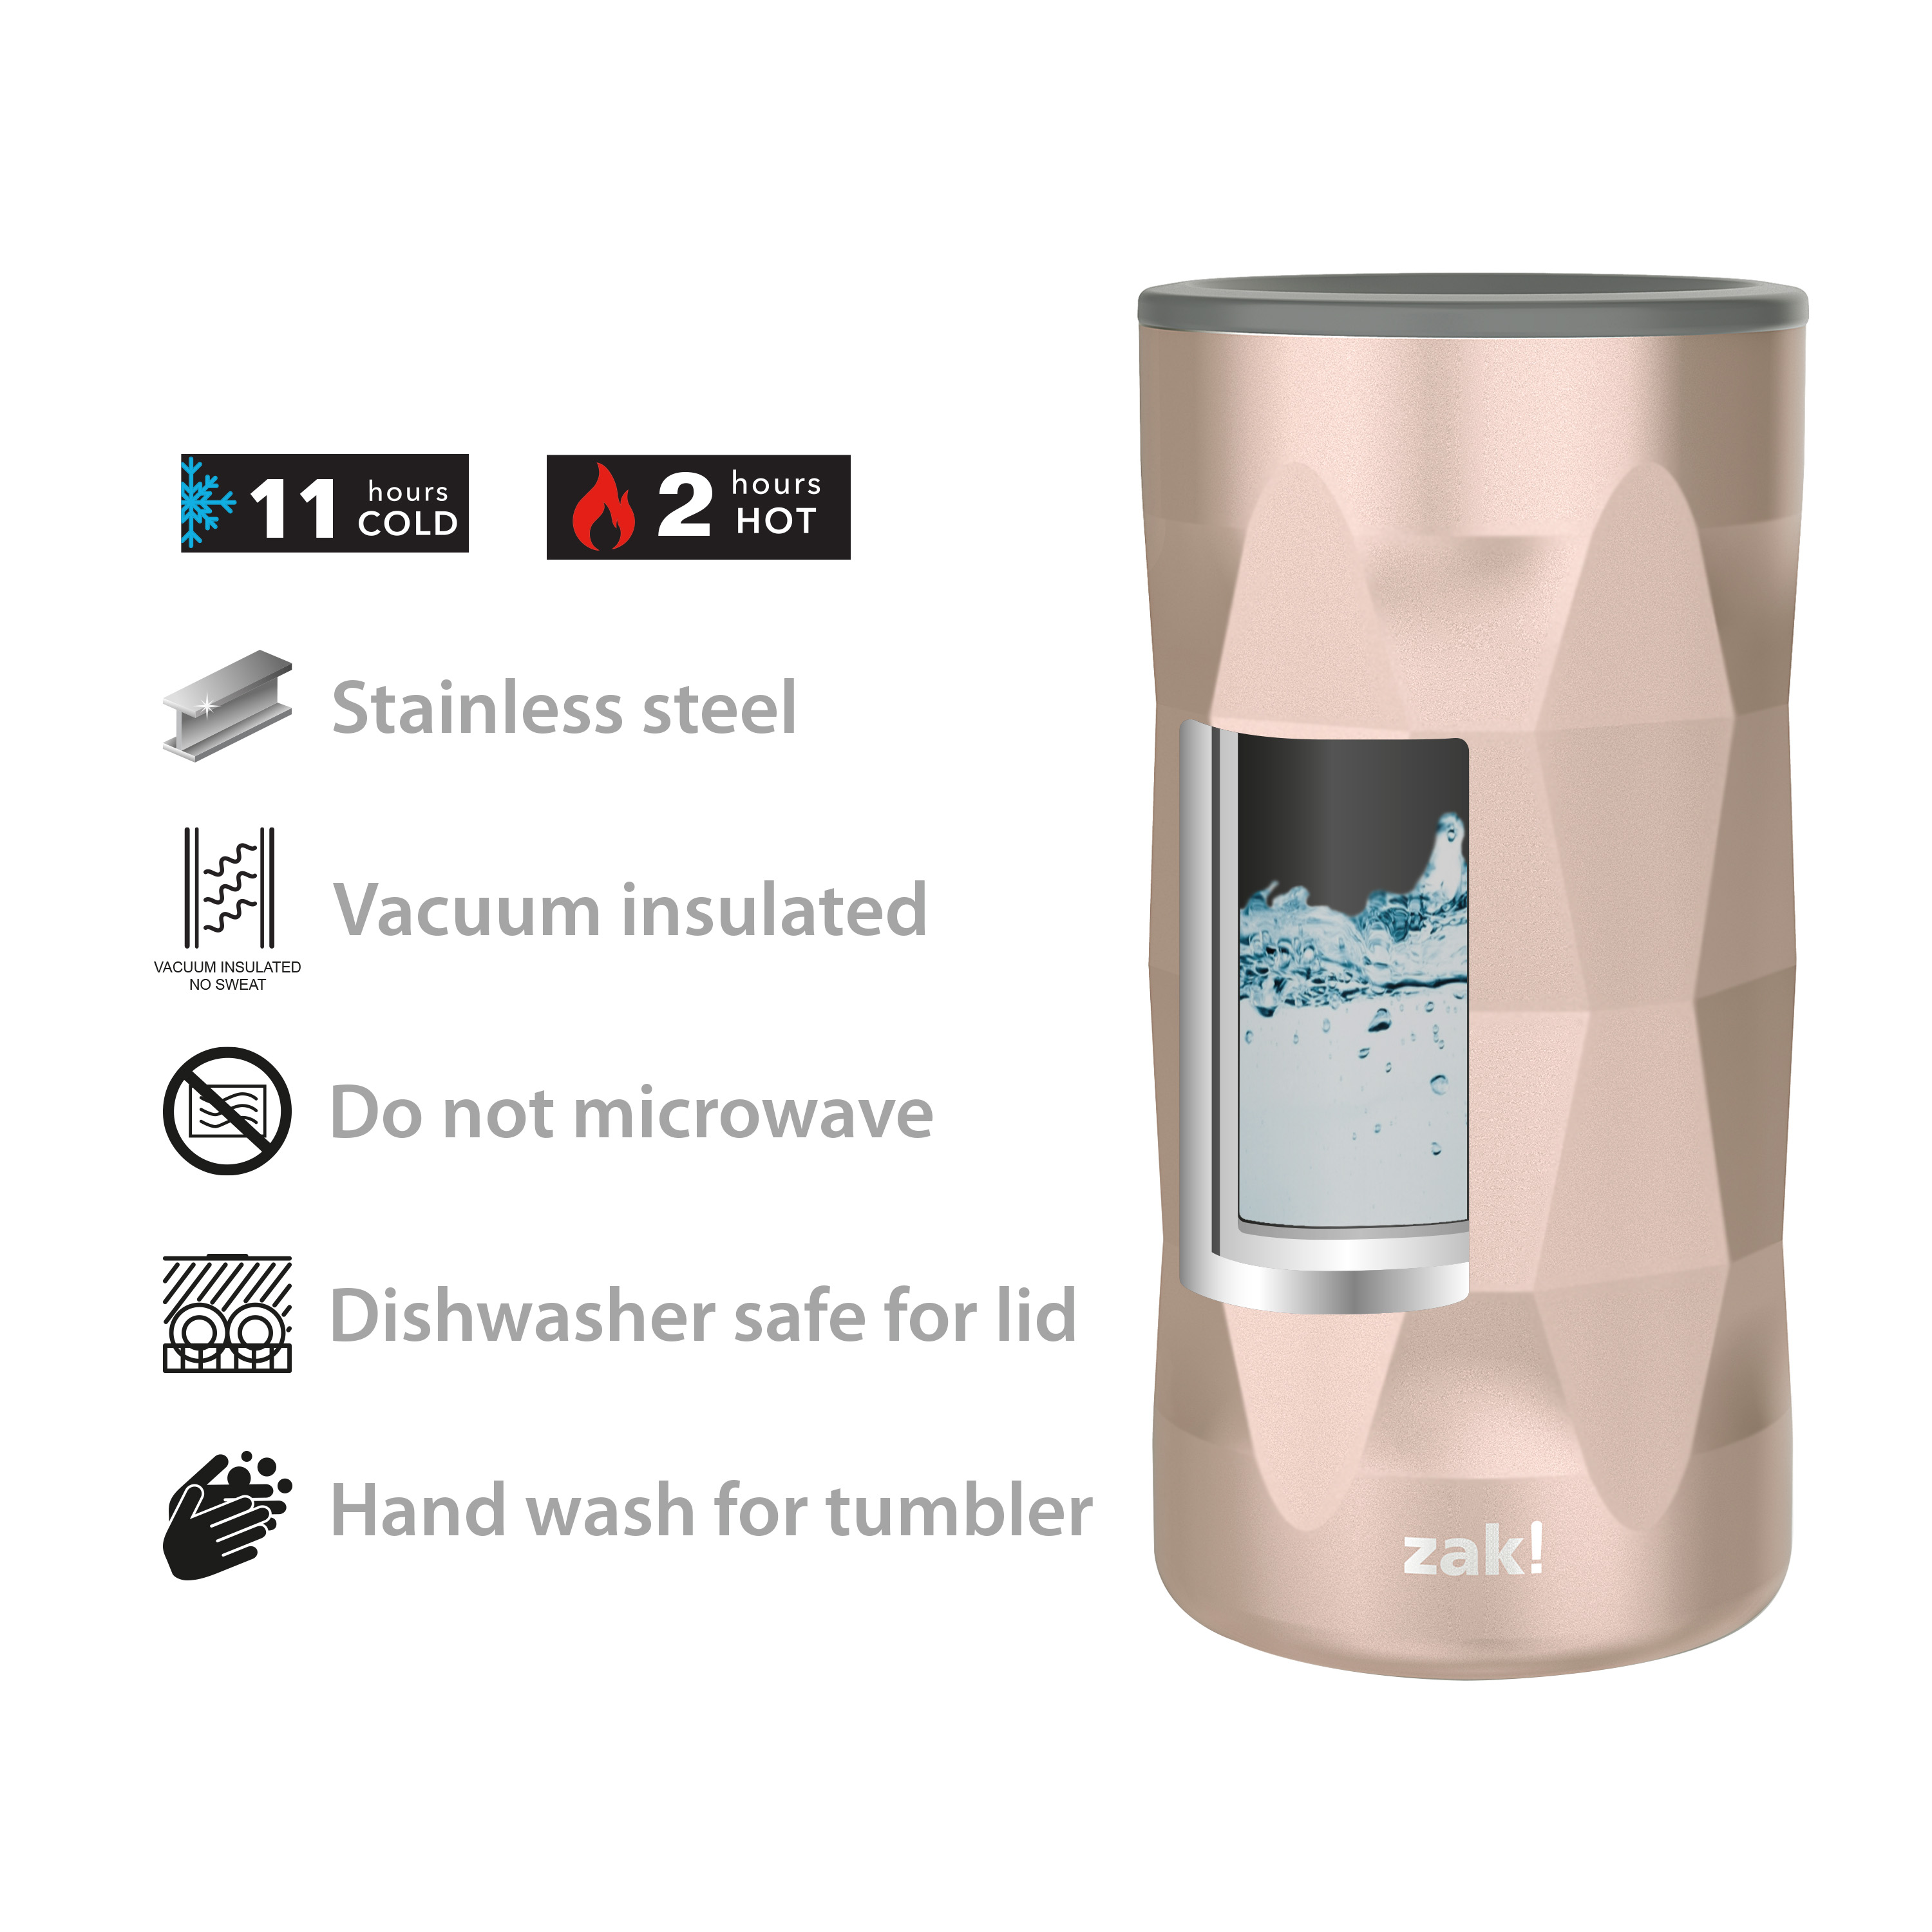 Fractal 12 ounce Vacuum Insulated Stainless Steel Tumbler, Rose Gold slideshow image 8